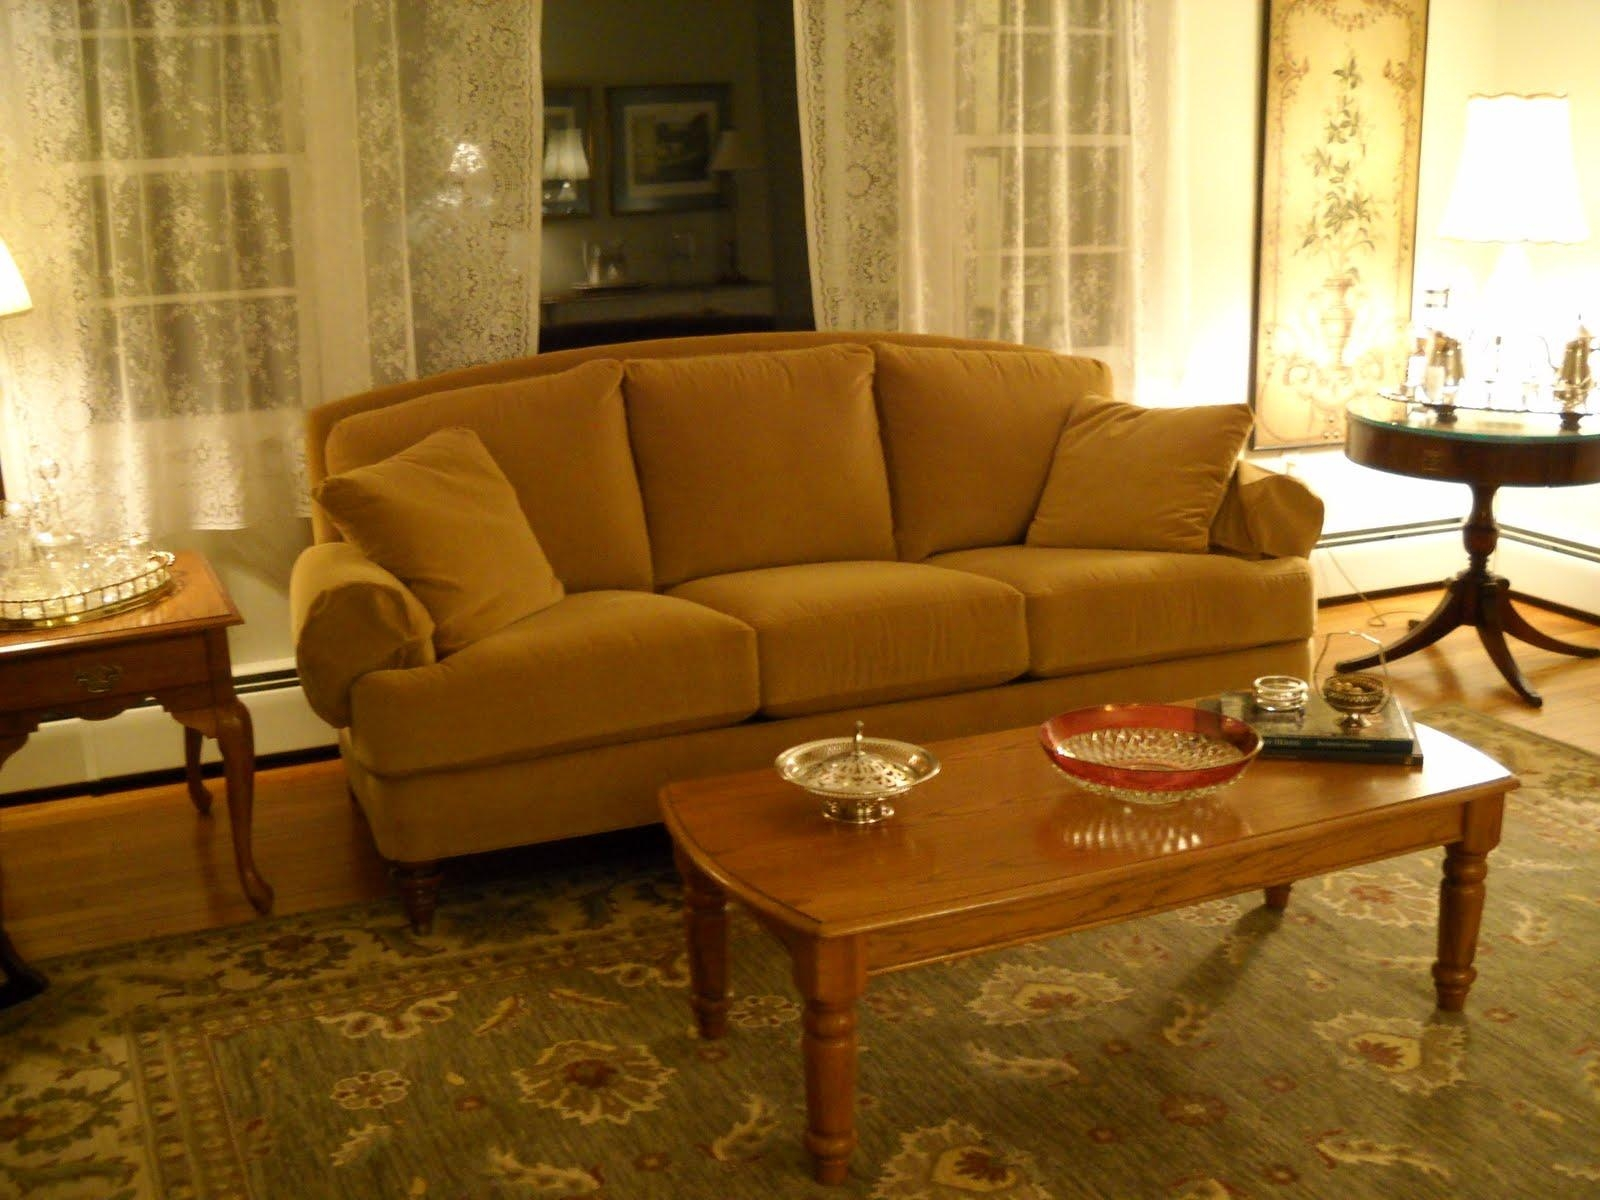 Furniture Home: Stunning Wide Seat Sectional Sofas 11 About Intended For Wide Seat Sectional Sofas (Image 9 of 20)